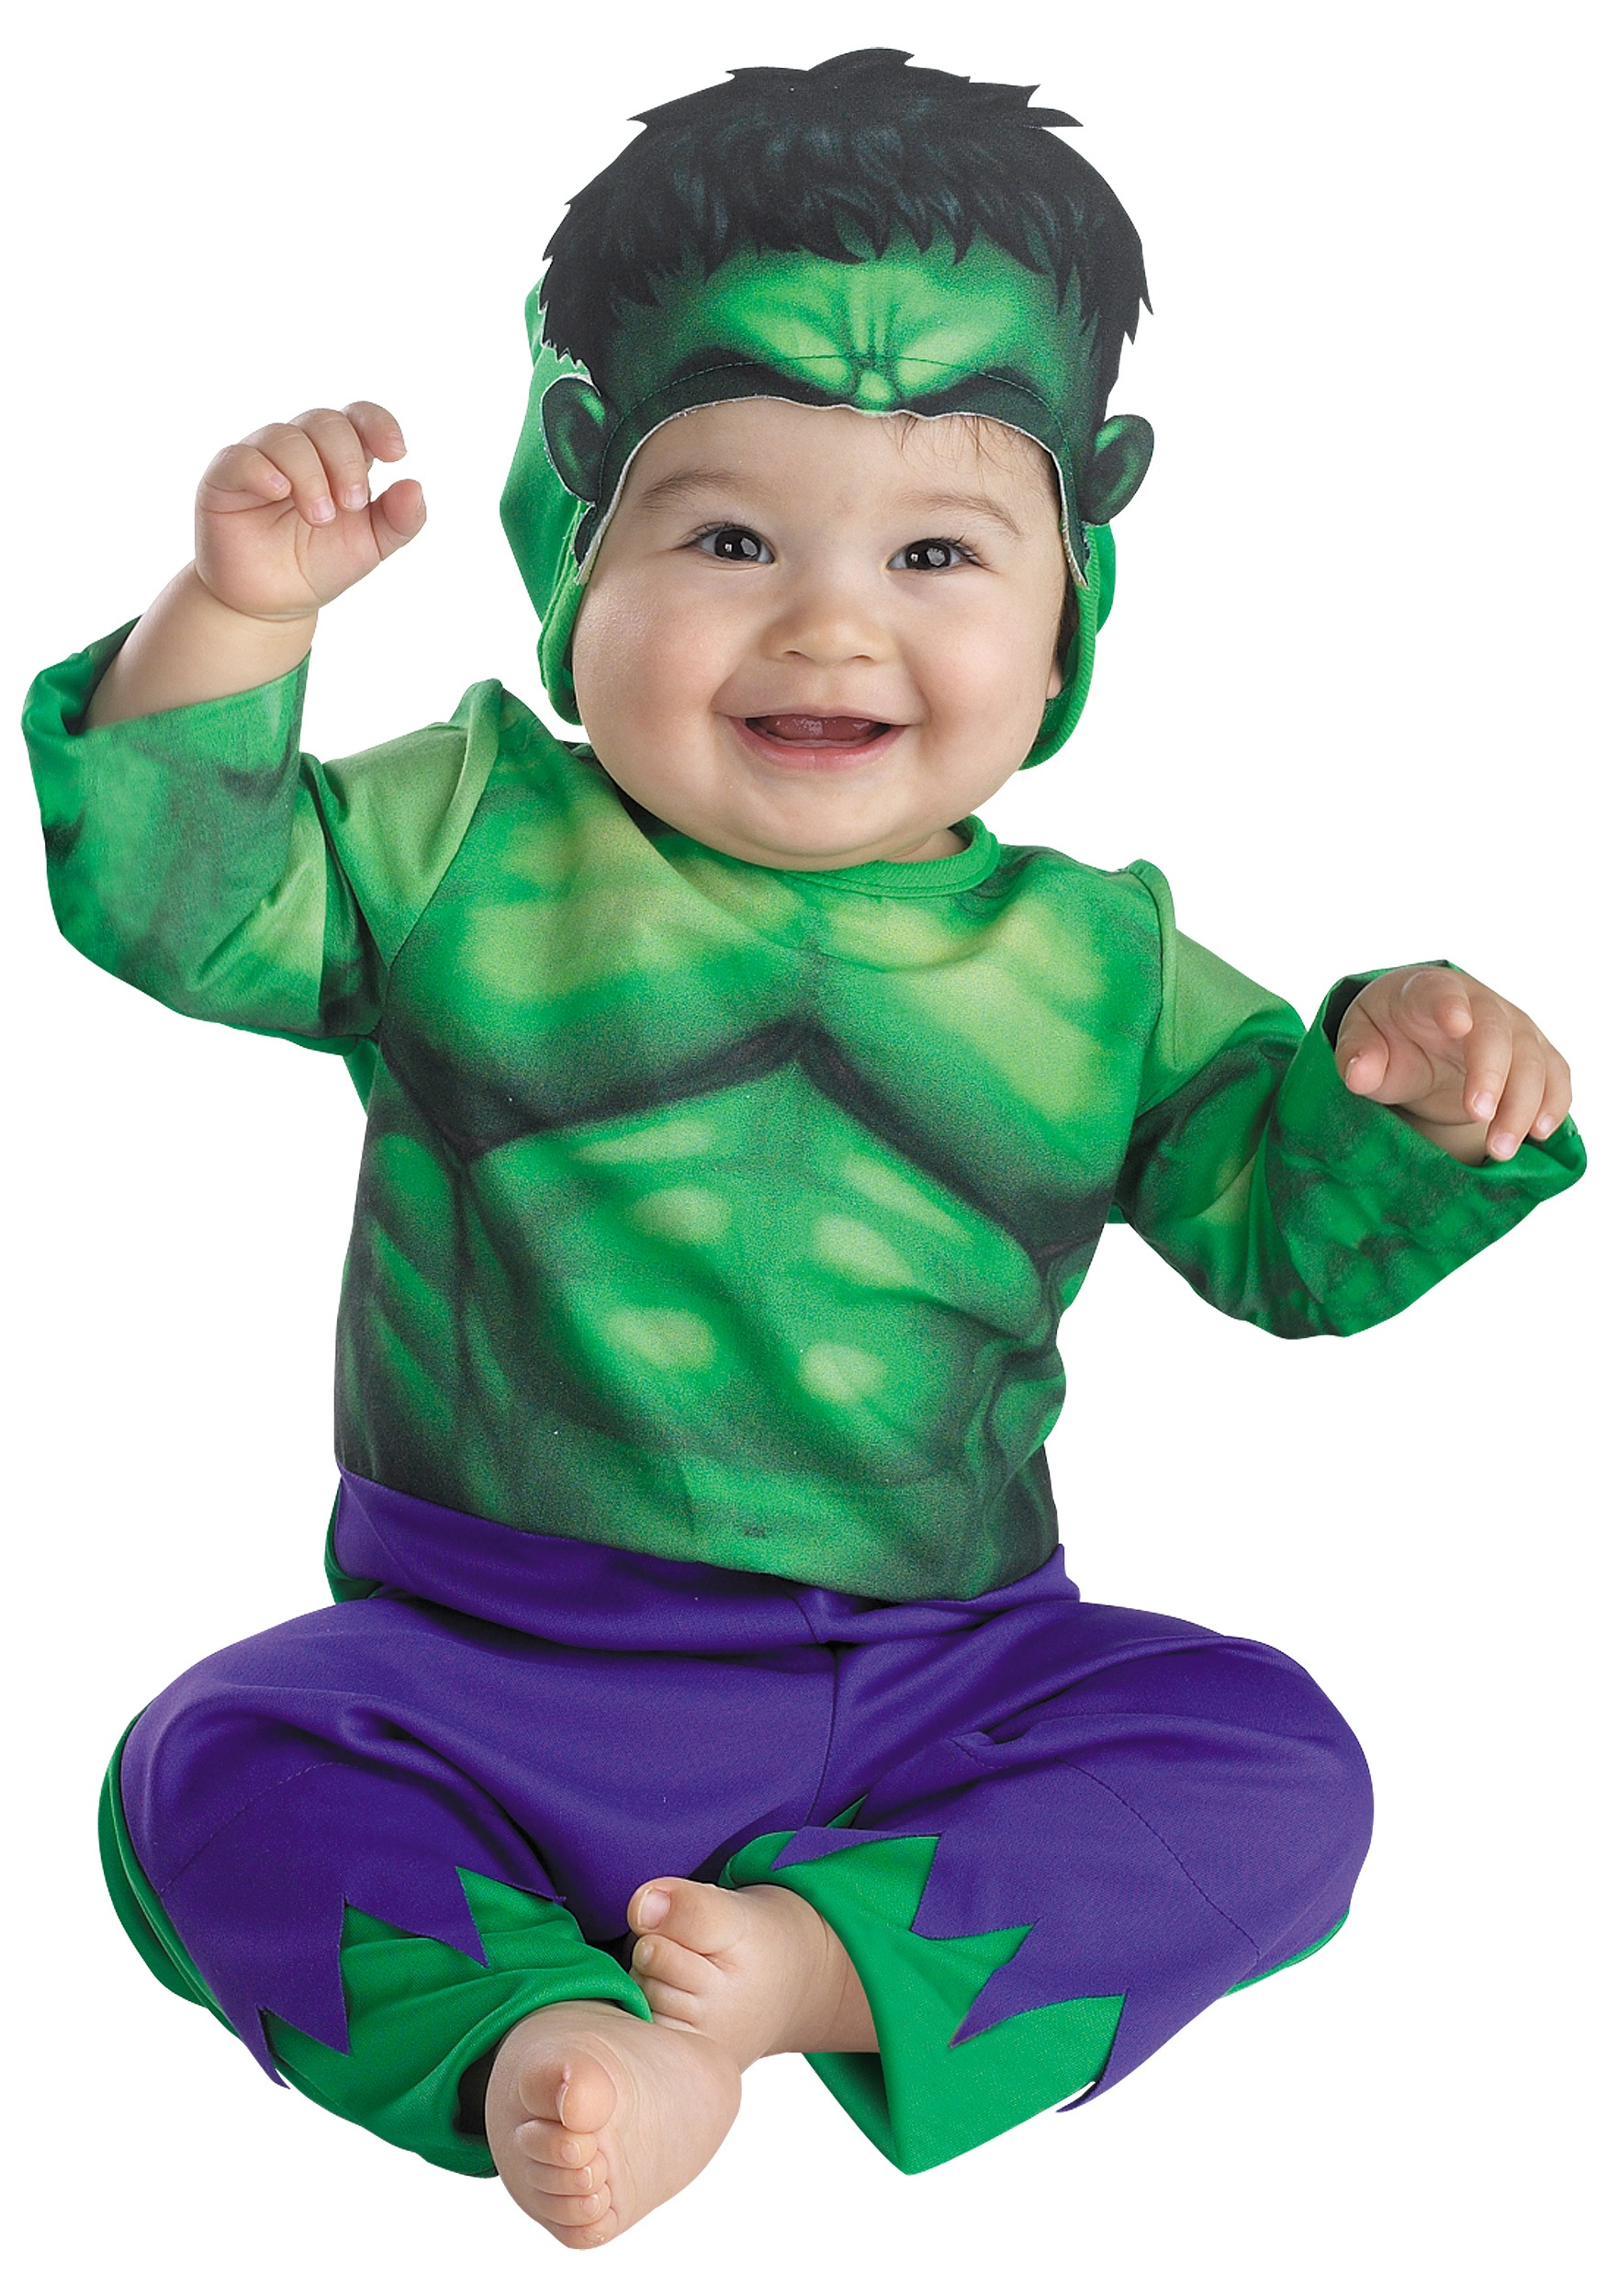 Infant Incredible Hulk Costume  sc 1 st  Halloween Costumes & Incredible Hulk Costumes - Halloween Costume Ideas 2018